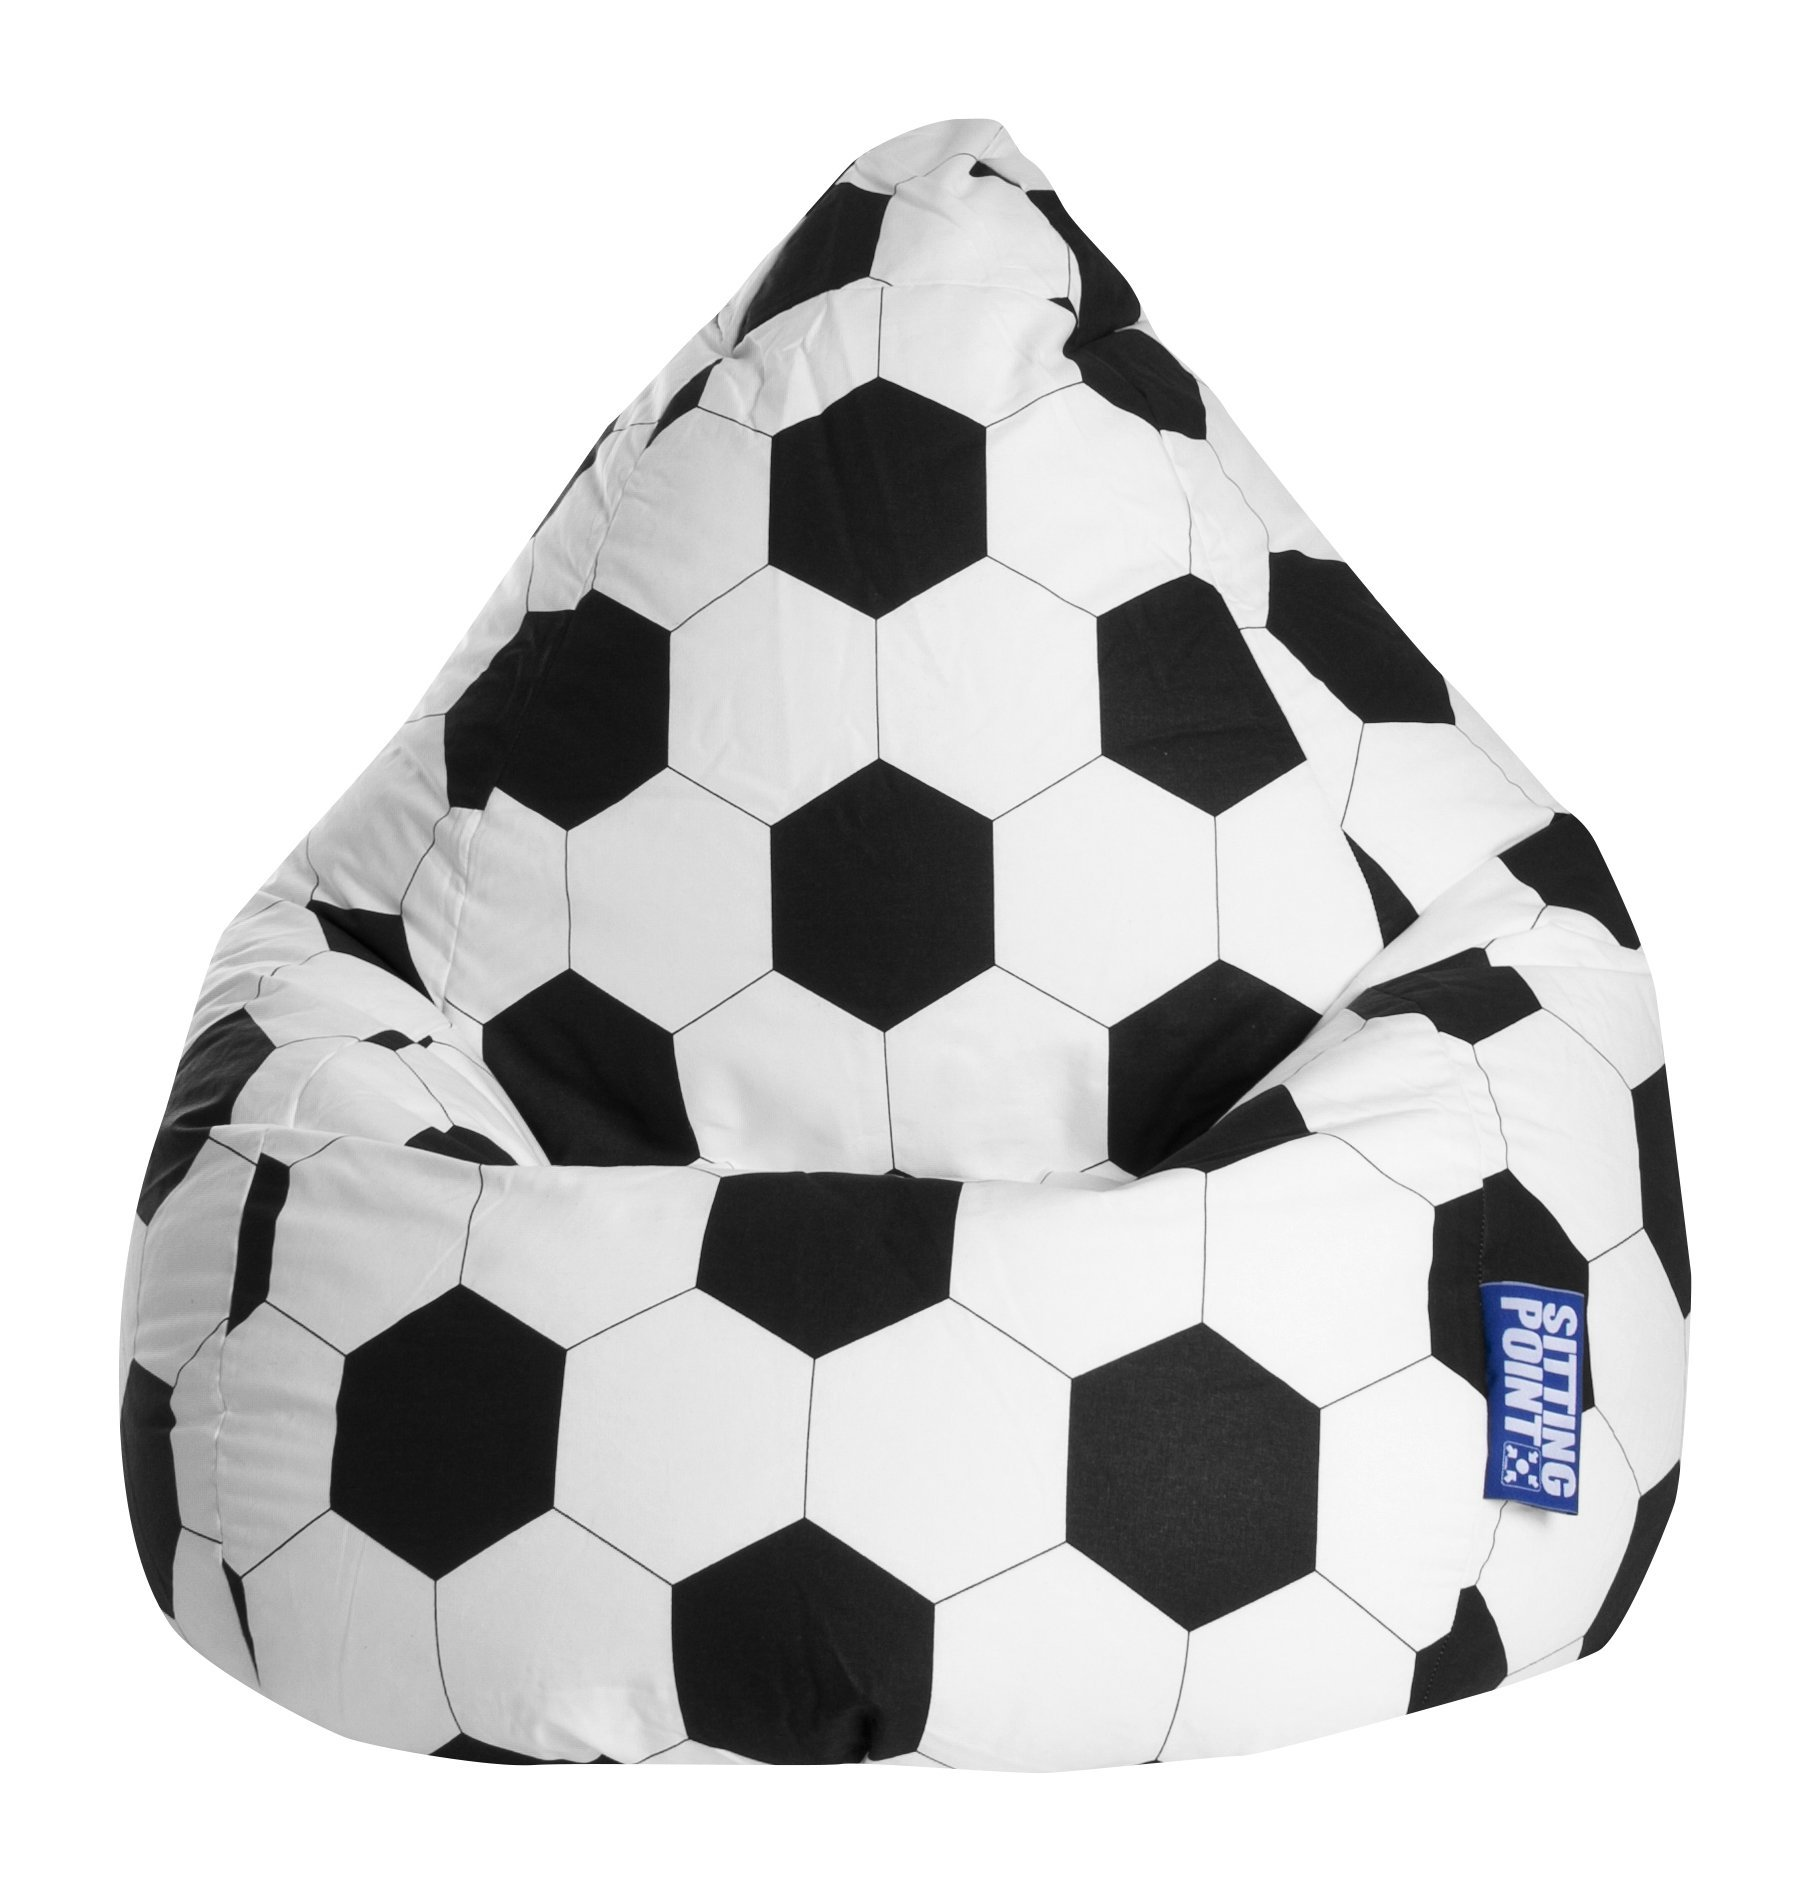 Gouchee Home Brava Collection Contemporary Oversized Cotton Upholstered Soccer Design Bean Bag Chair, Black/White